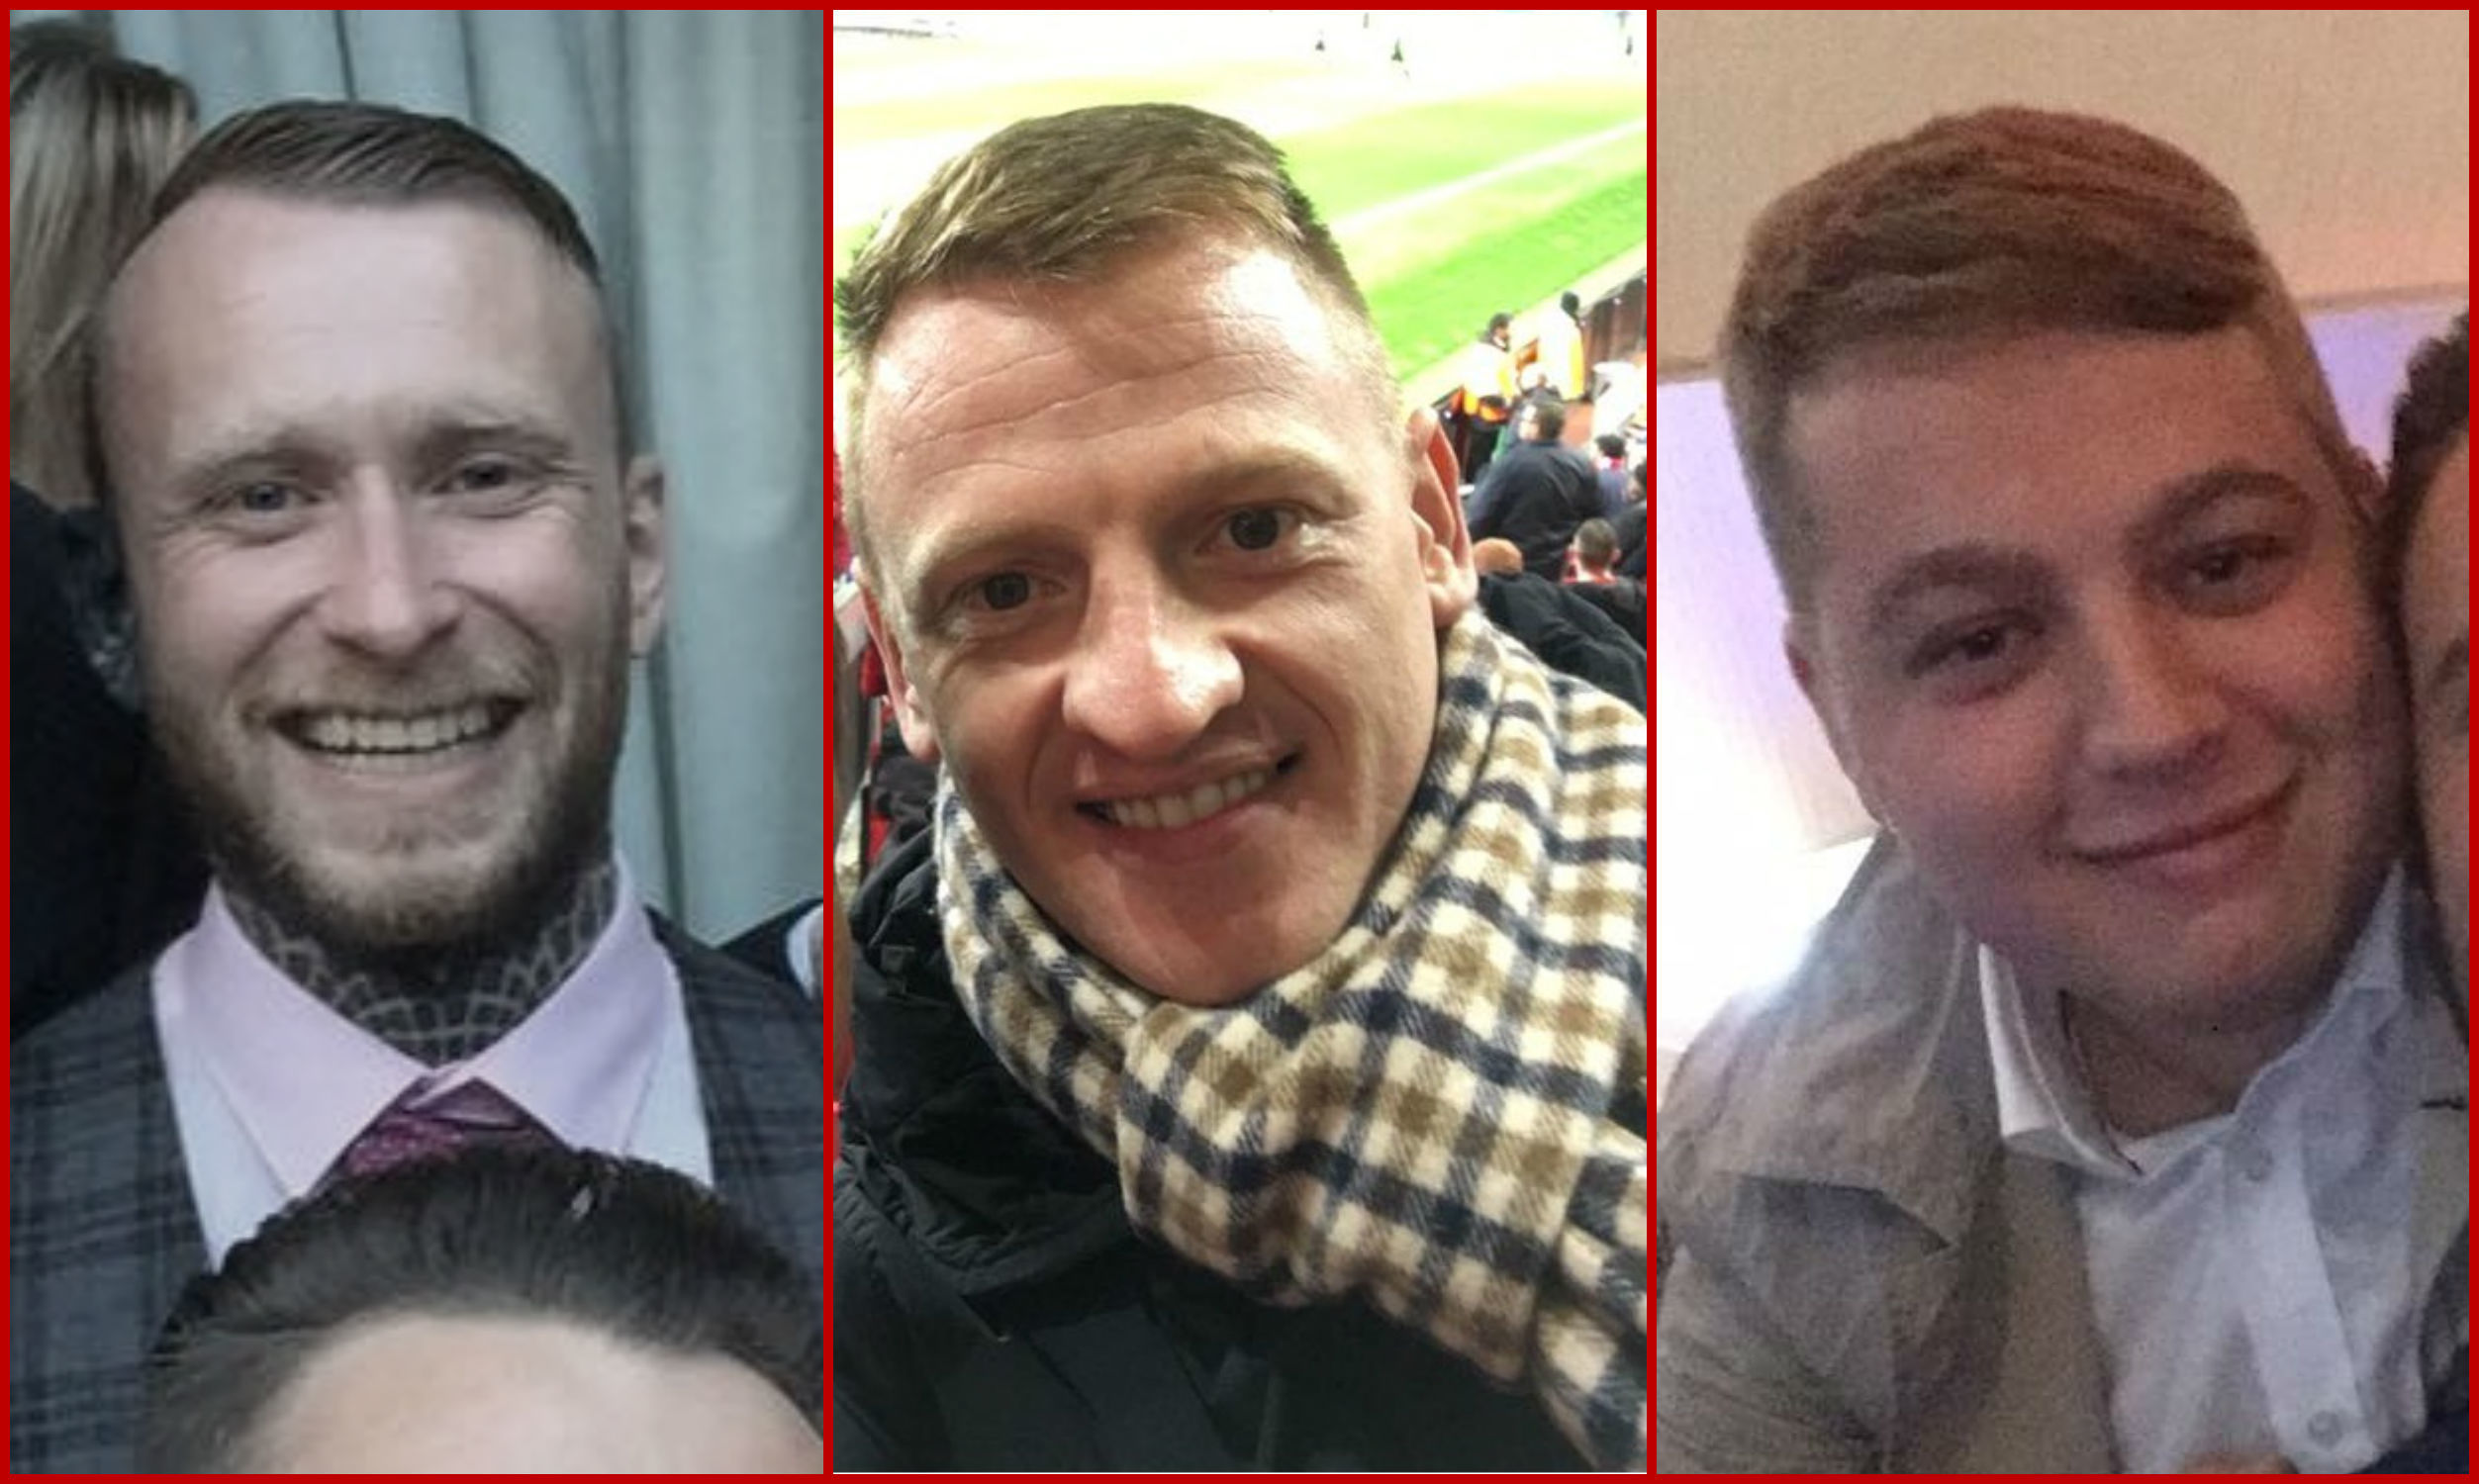 Left to right: Gary McDonough, Anthony Bruce and Reece Wright, who've been told to pay up for the offences.